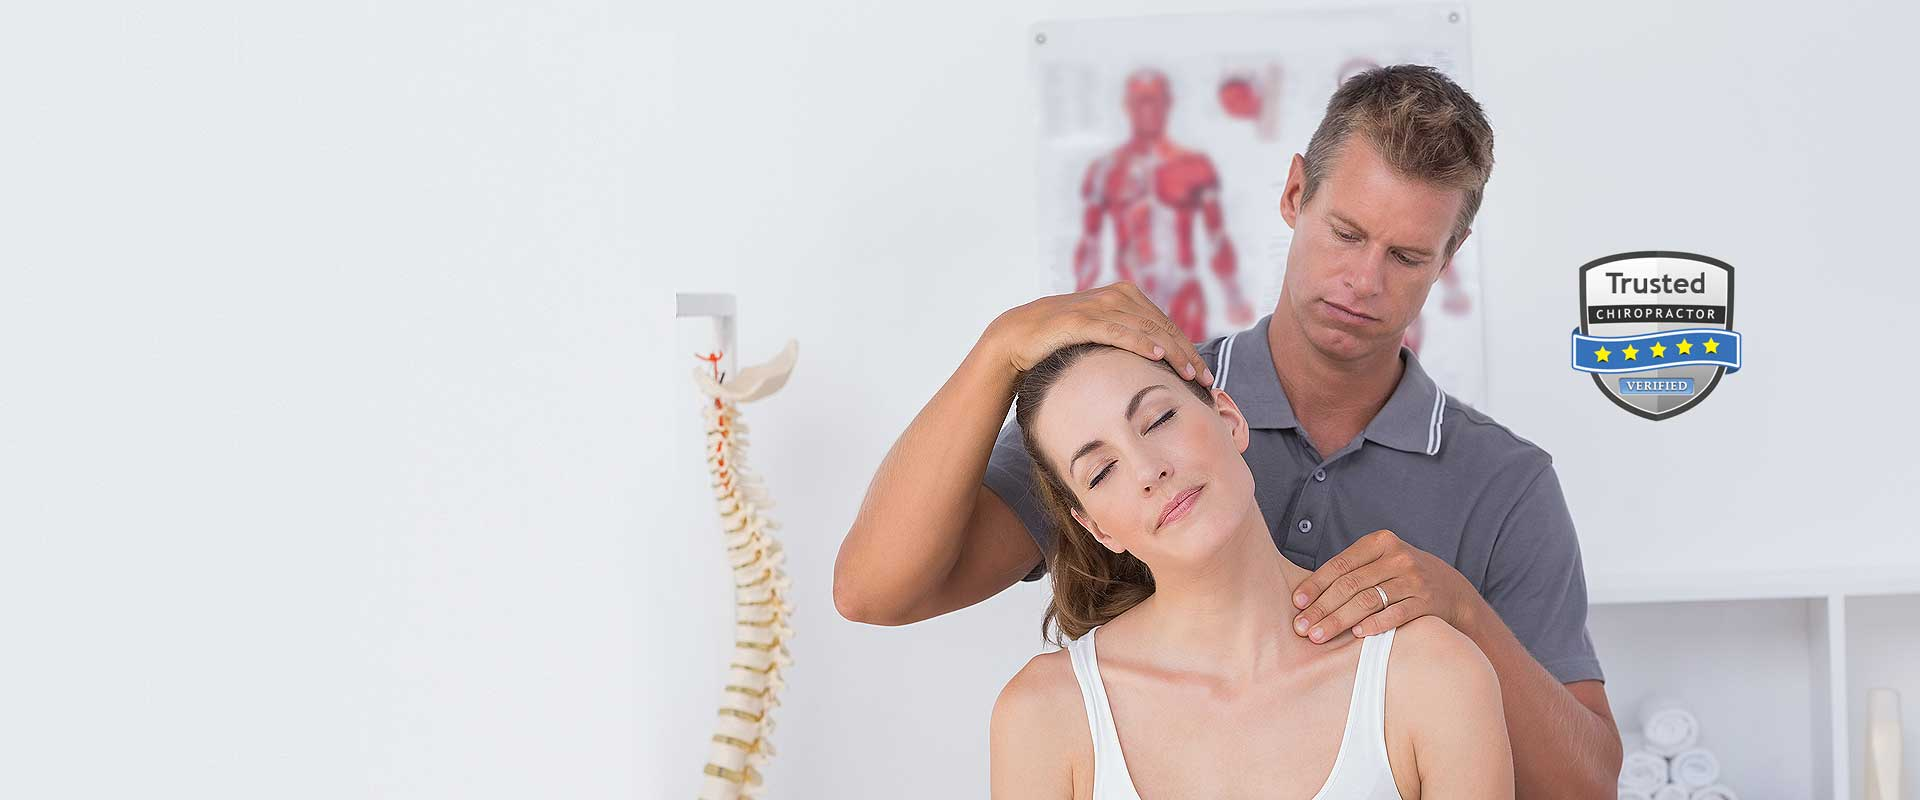 Whiplash treatment Woodlawn MD